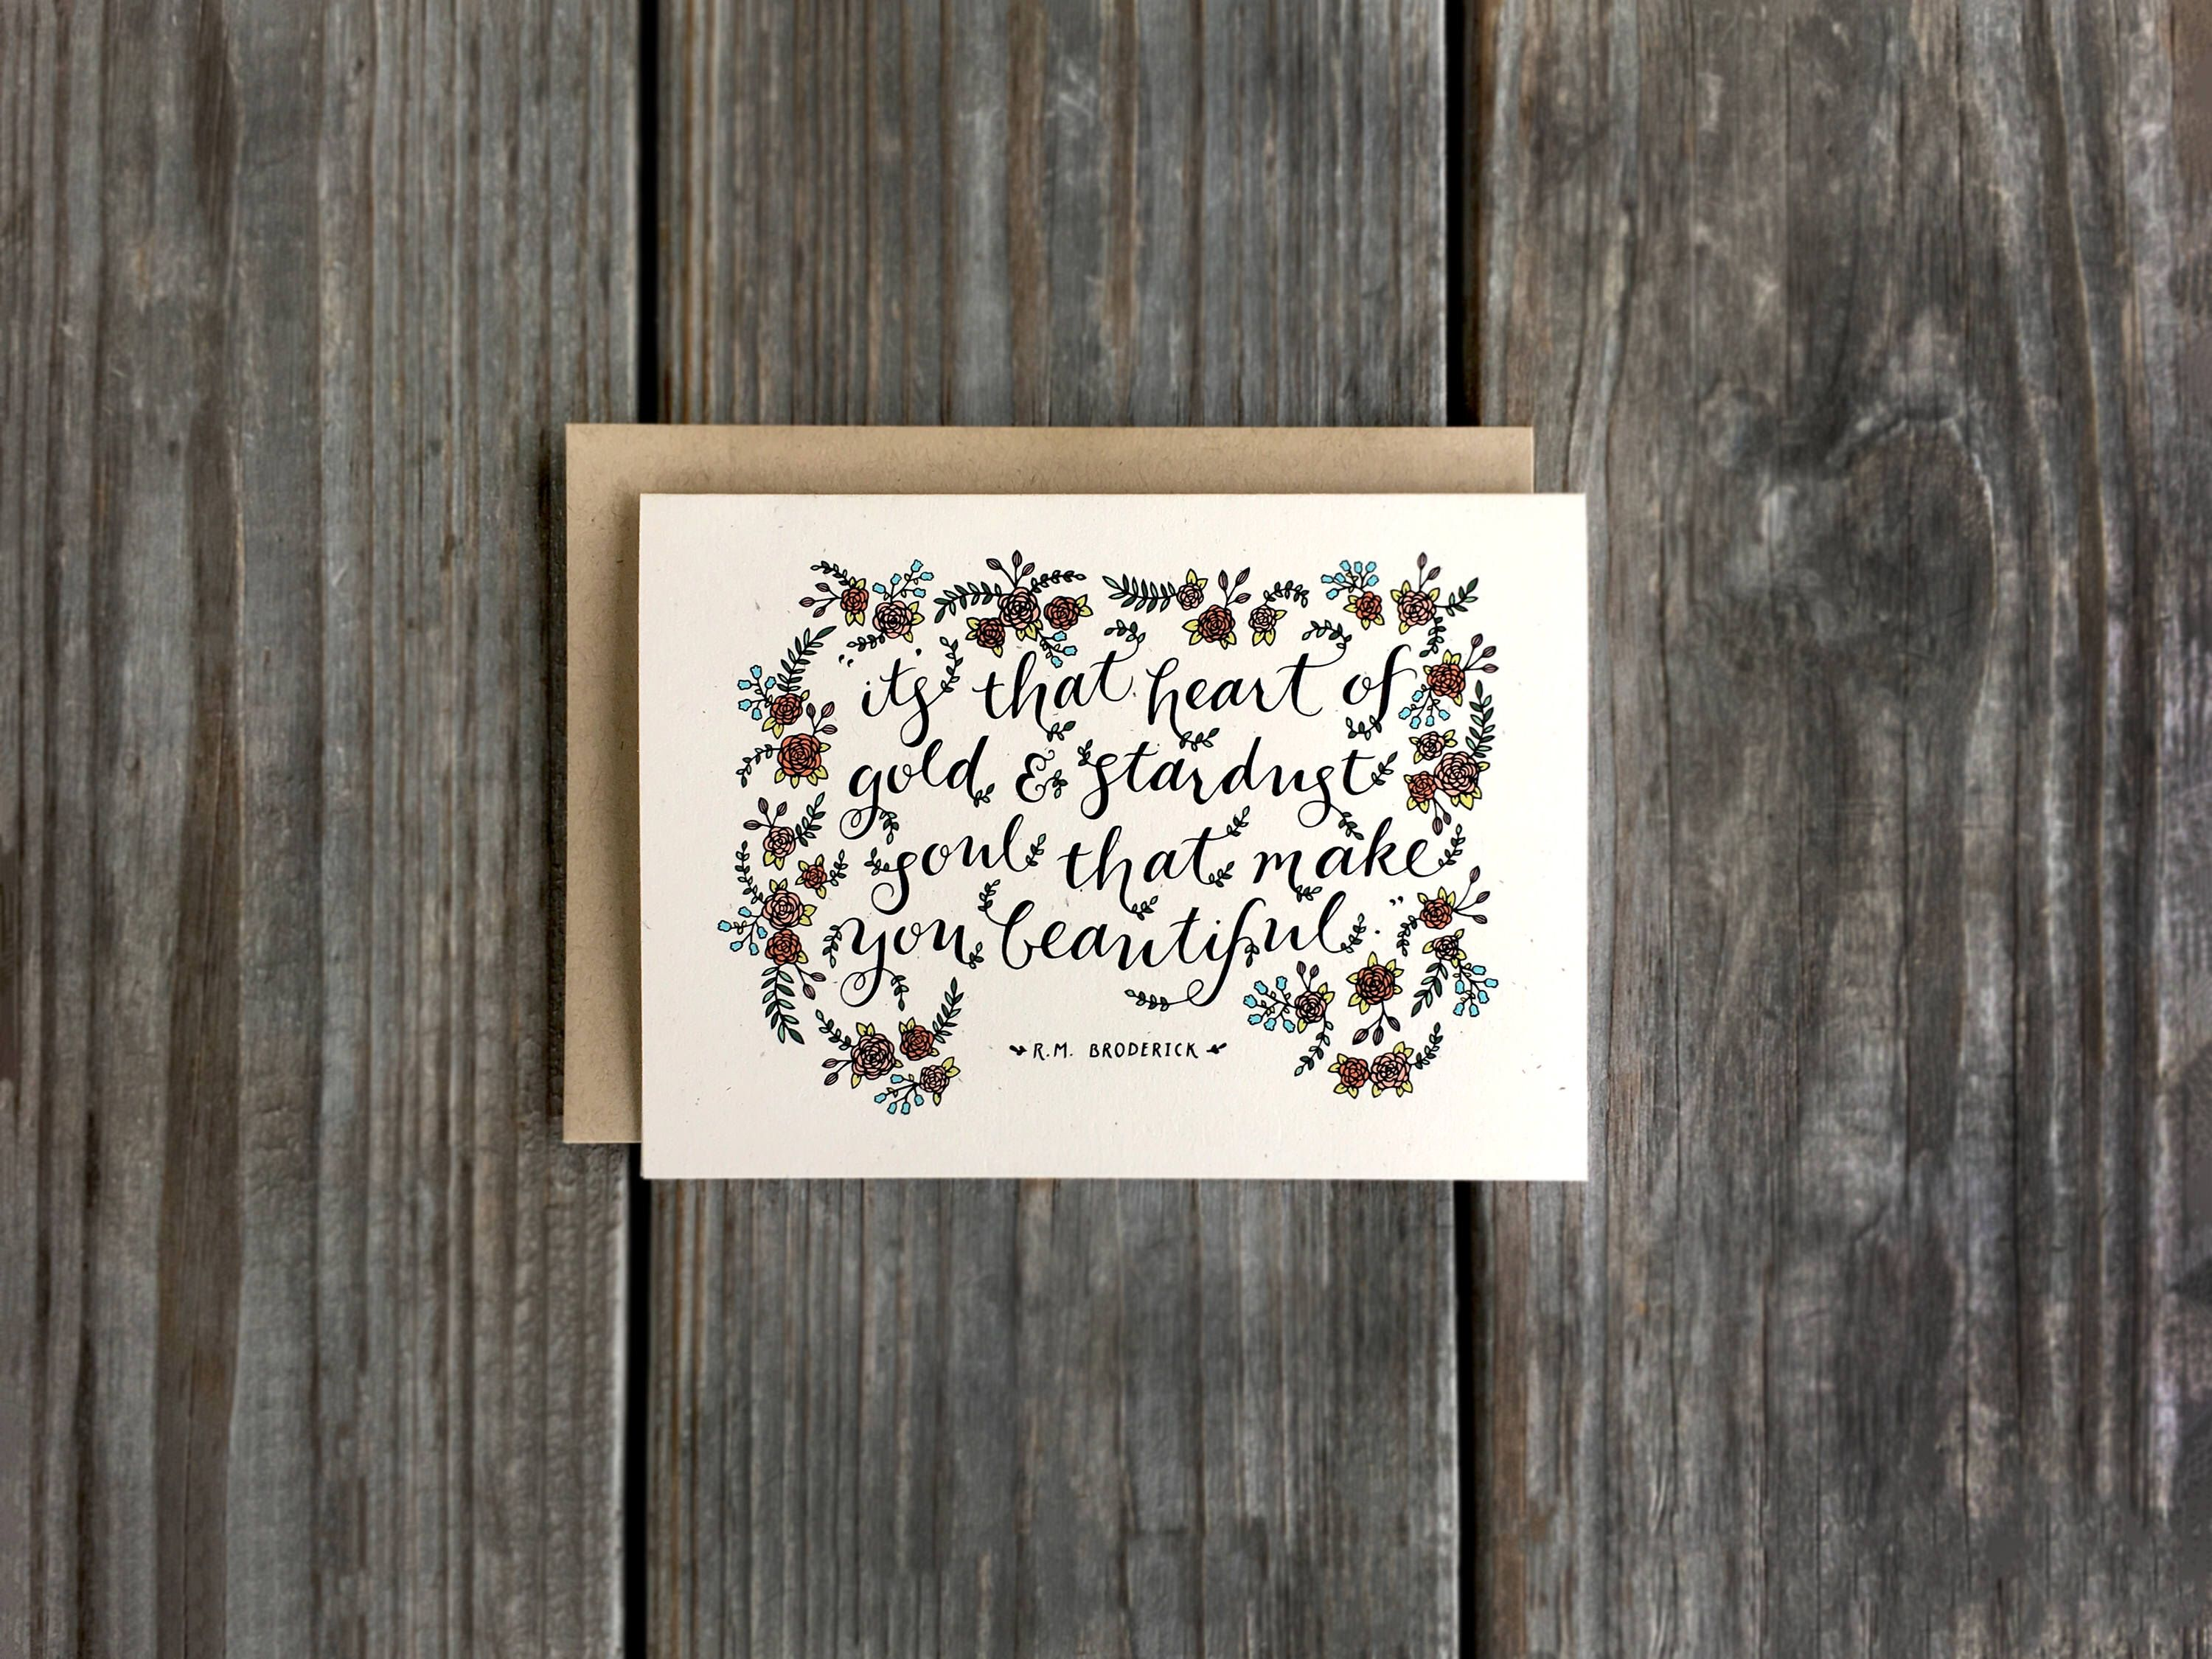 Heart of gold card beautiful quote card rm broderick